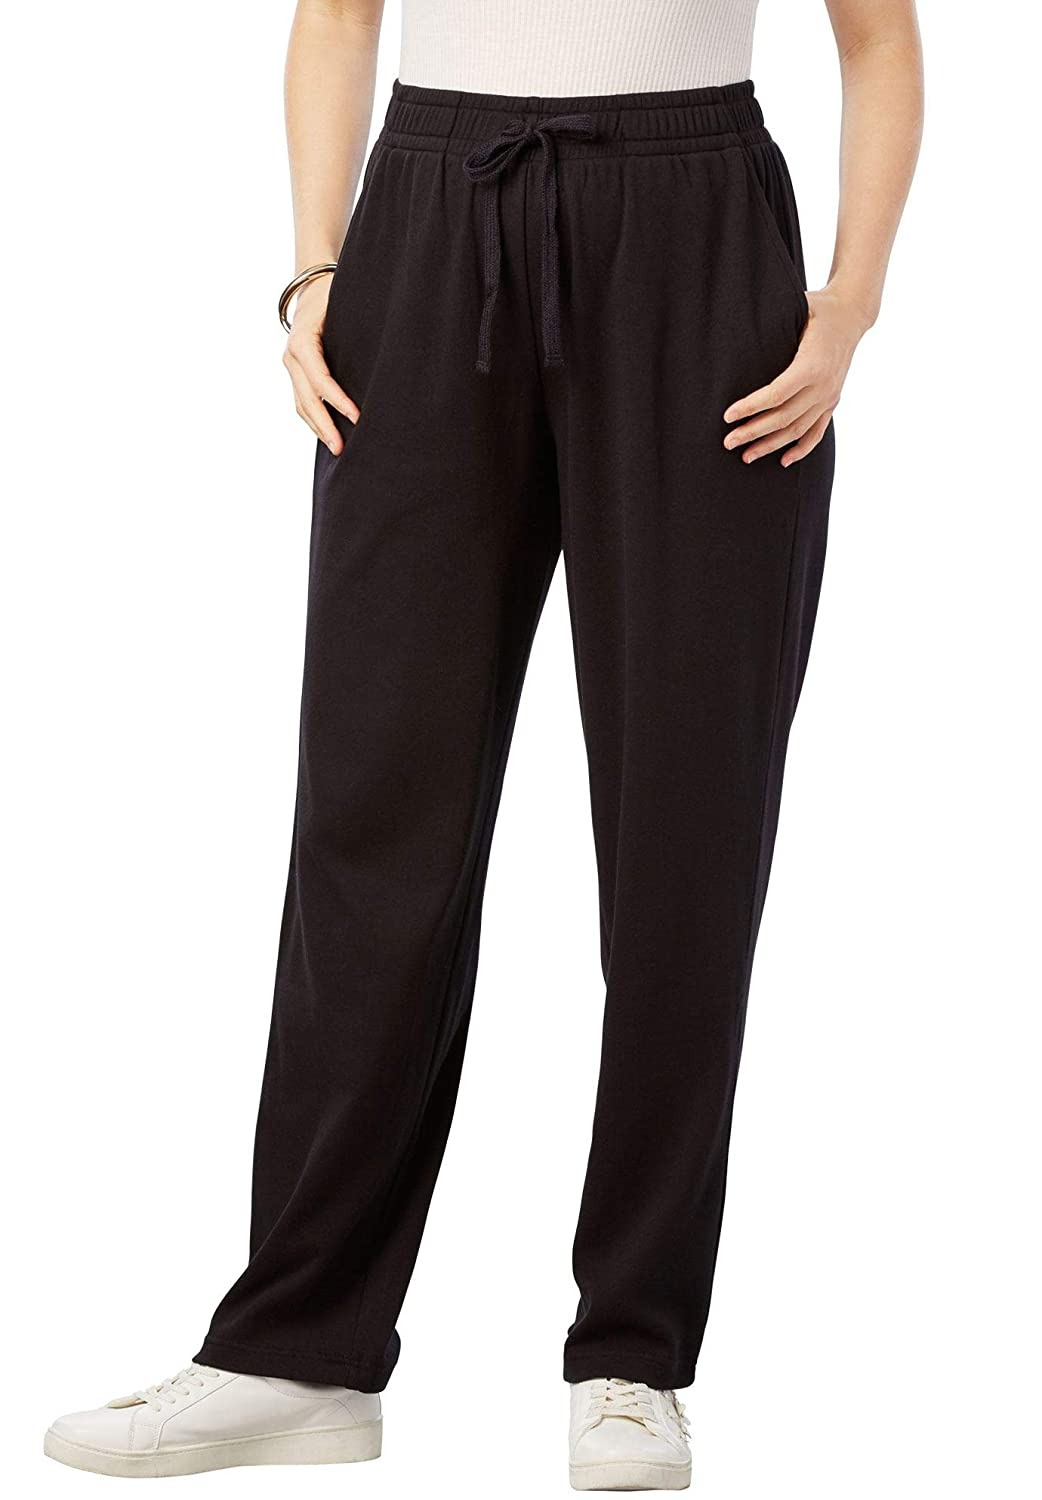 55b4b5798dd91 Roamans Women s Plus Size Petite Straight Leg Soft Knit Pant at Amazon  Women s Clothing store